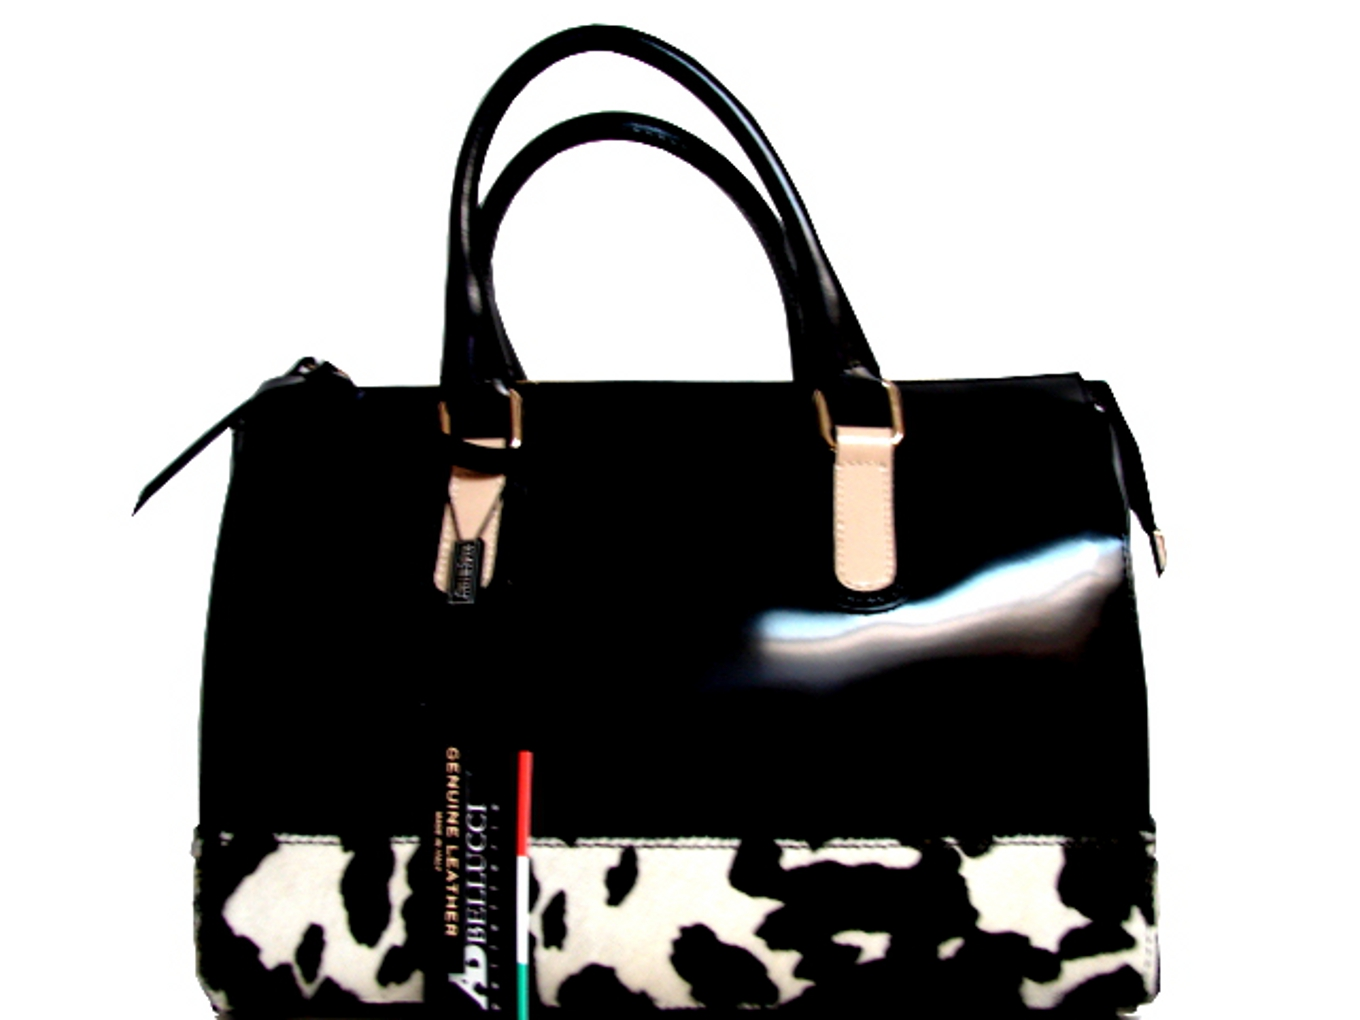 AB A. BELLUCCI  ITALIAN DESIGNER HANDBAG IN BLACK CALF LEATHER & ANIMAL PRINT!